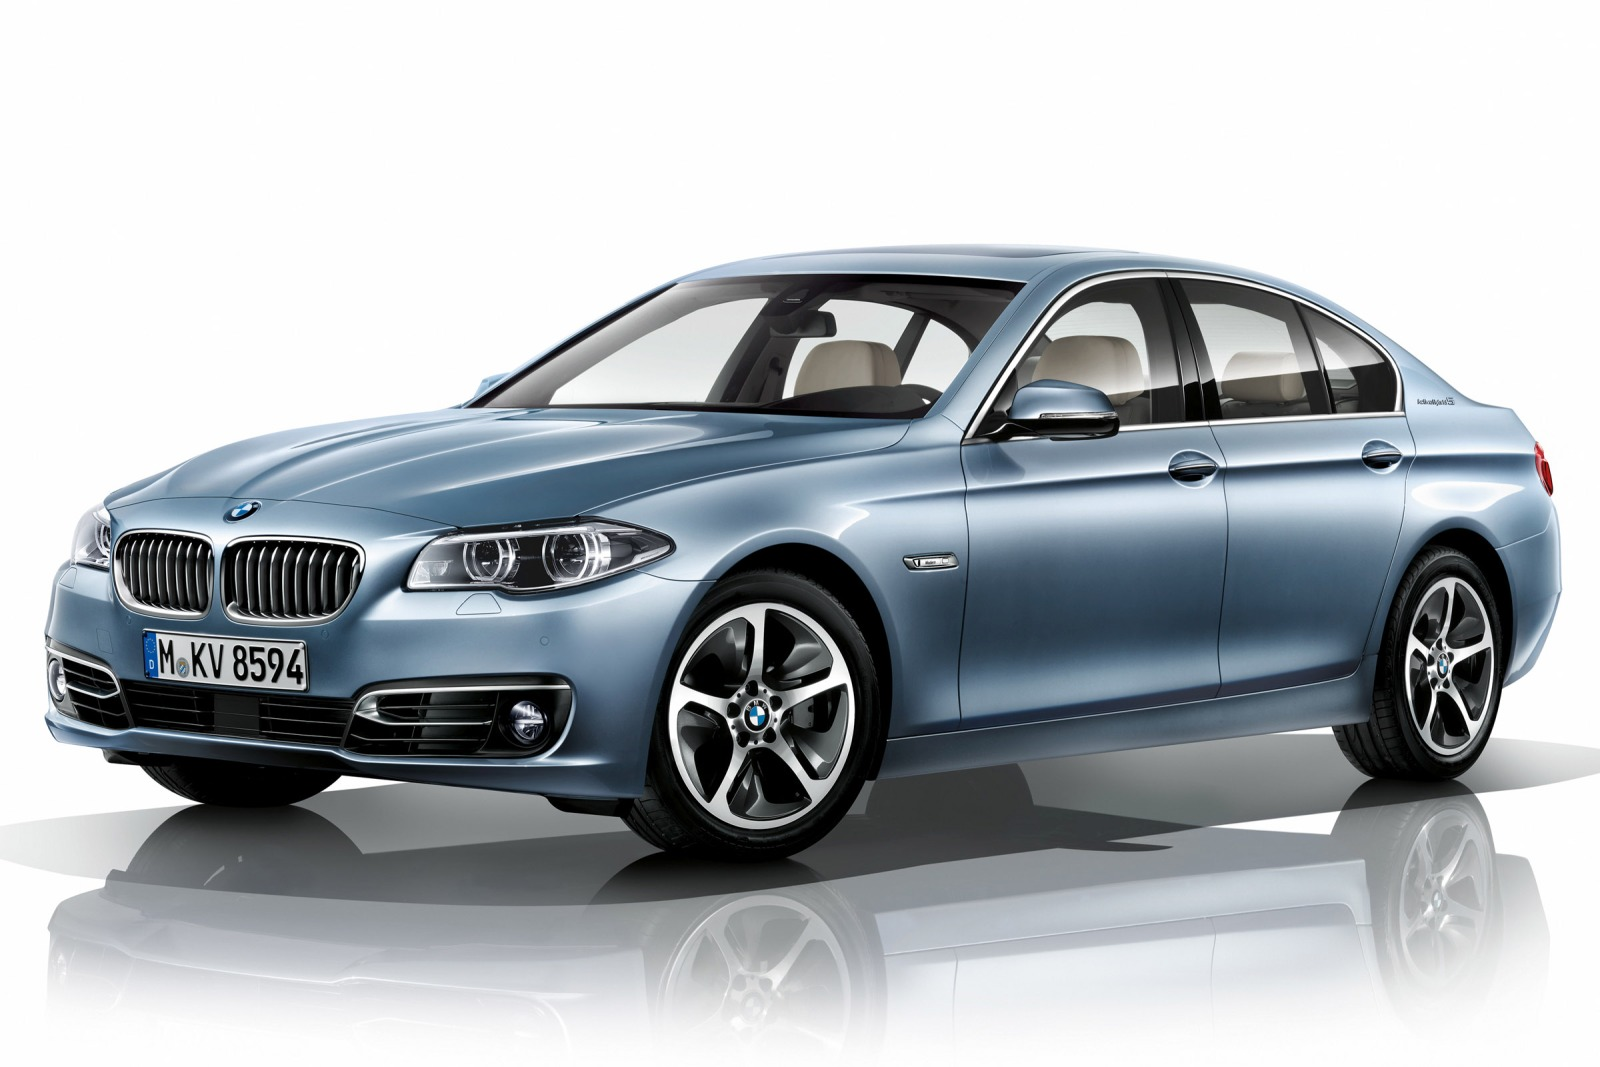 2016 Bmw Activehybrid 5 #3